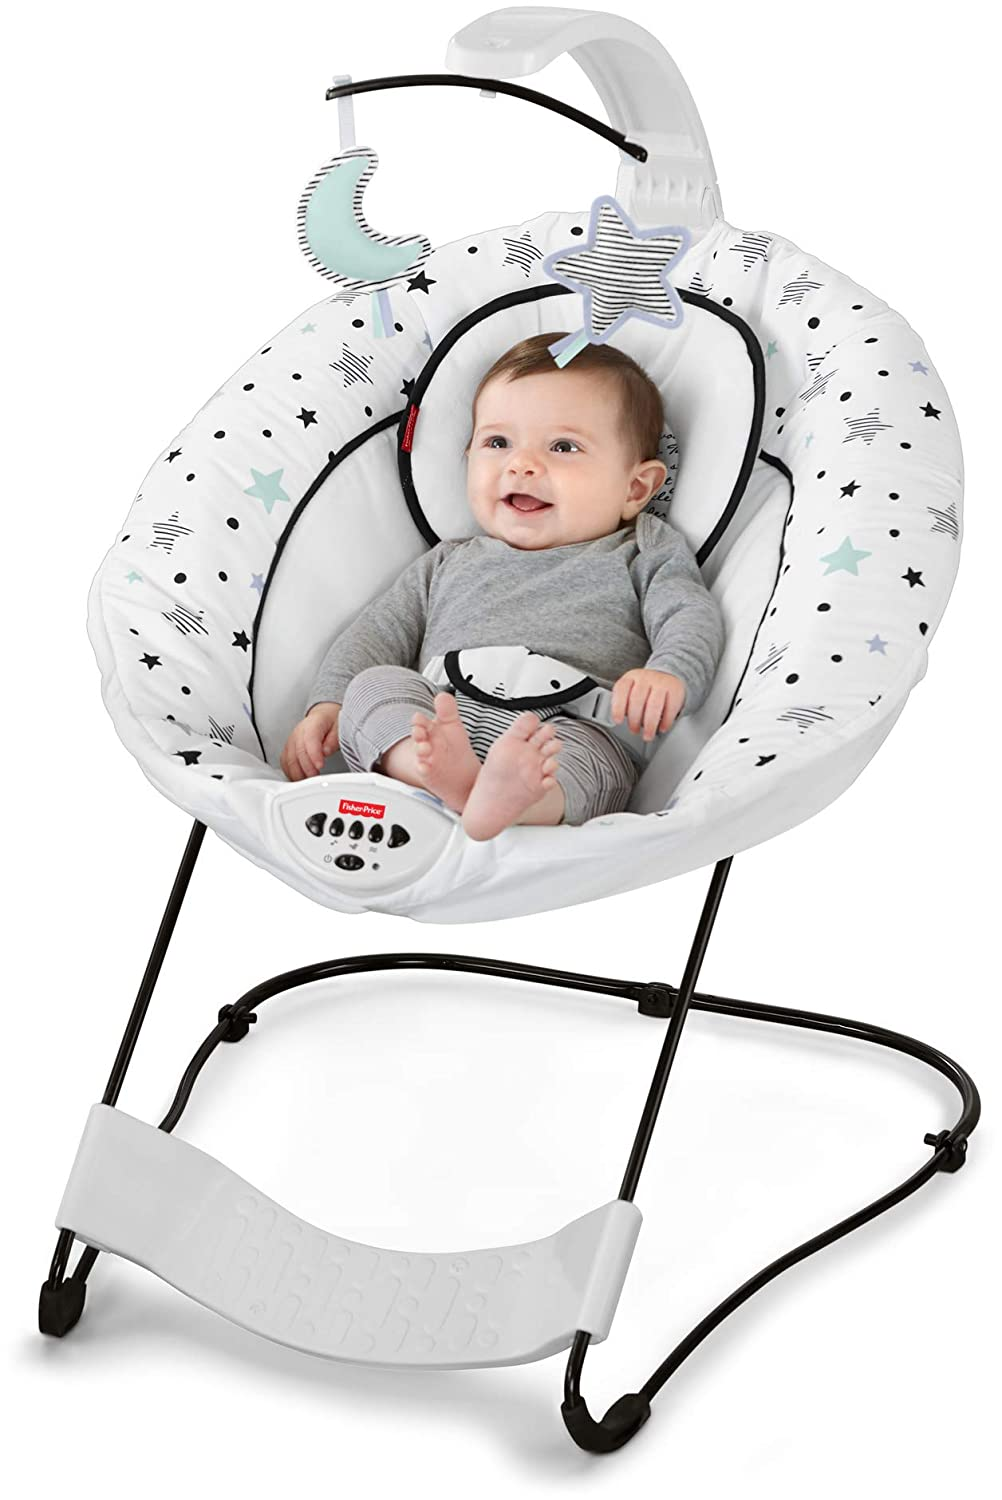 Fisher-Price Deluxe Bouncer See Soothe, Starry Night